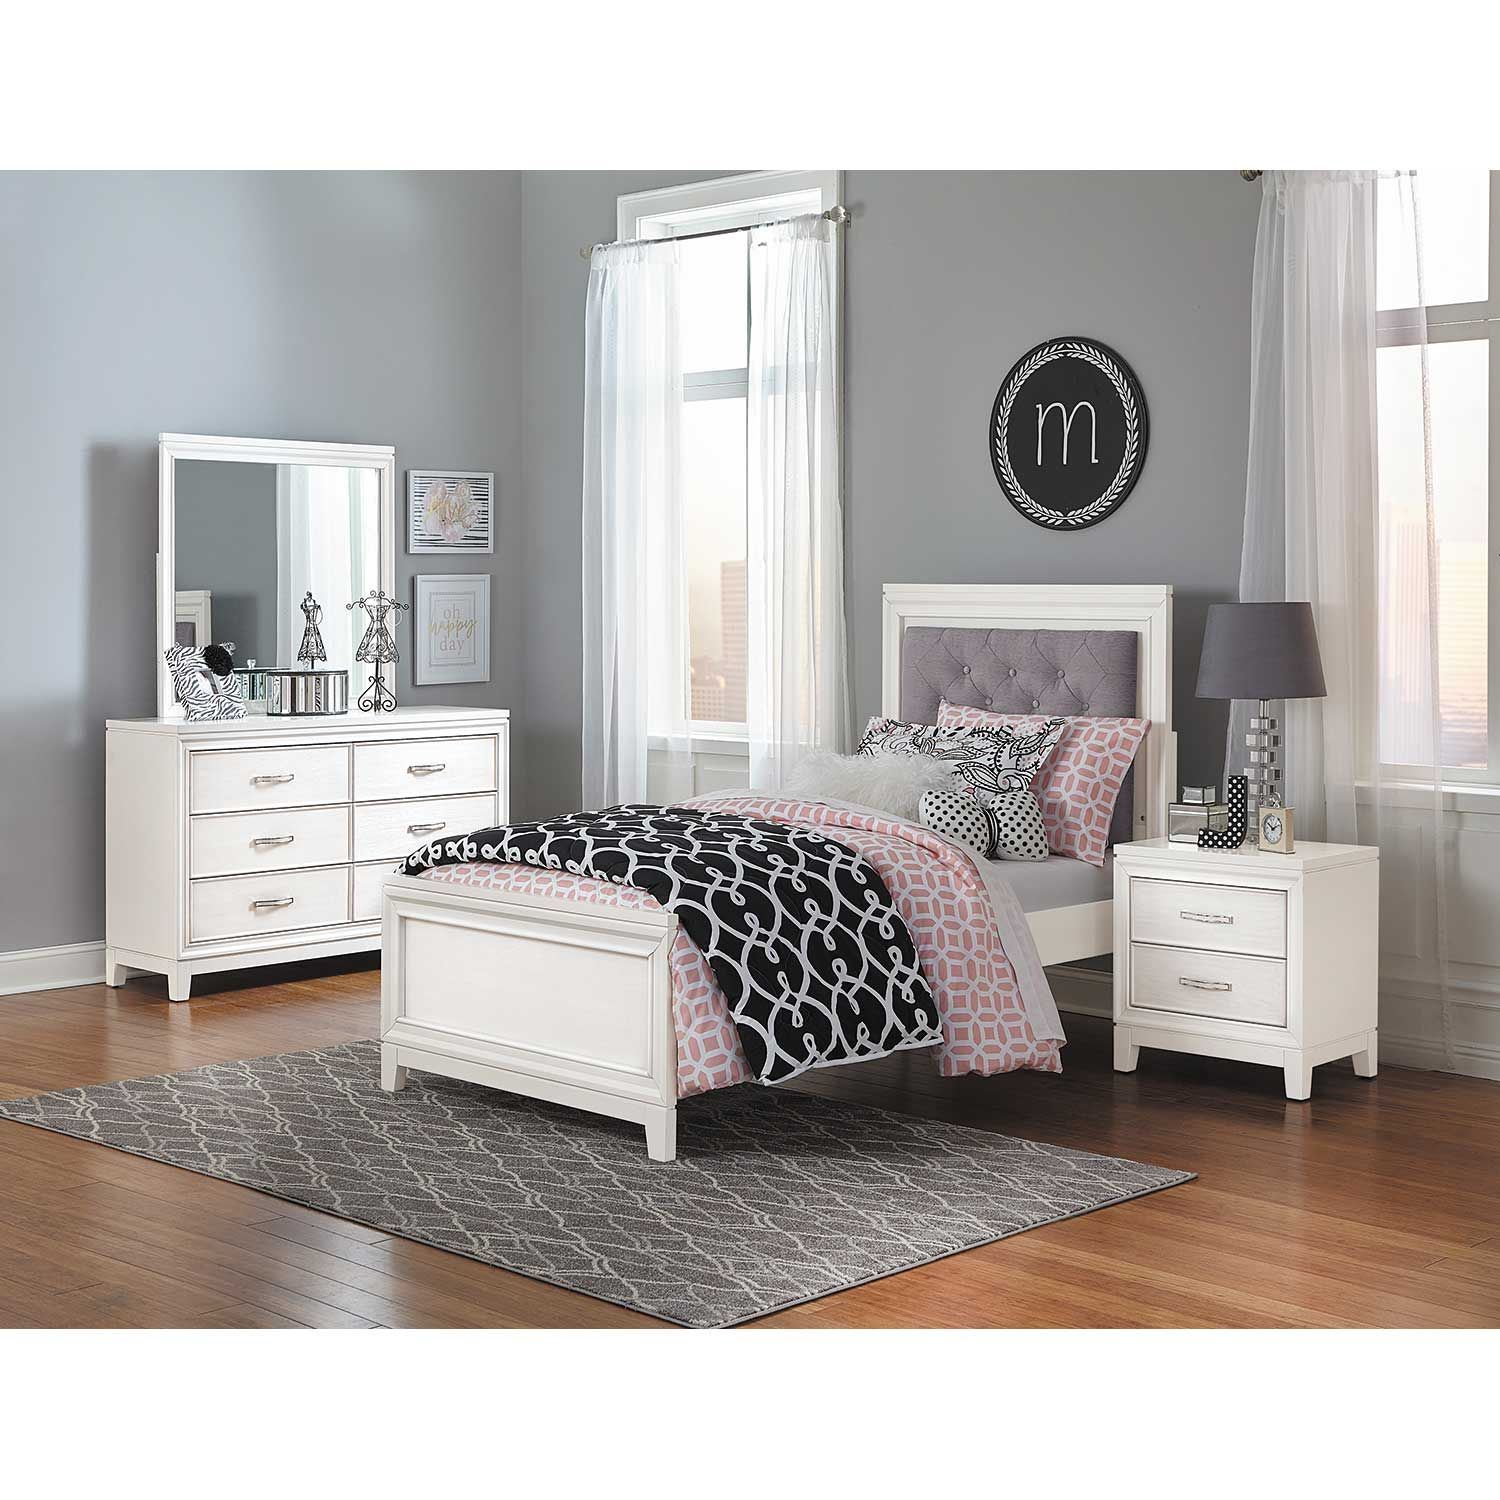 Picture of Evelyn 6 Drawer Dresser